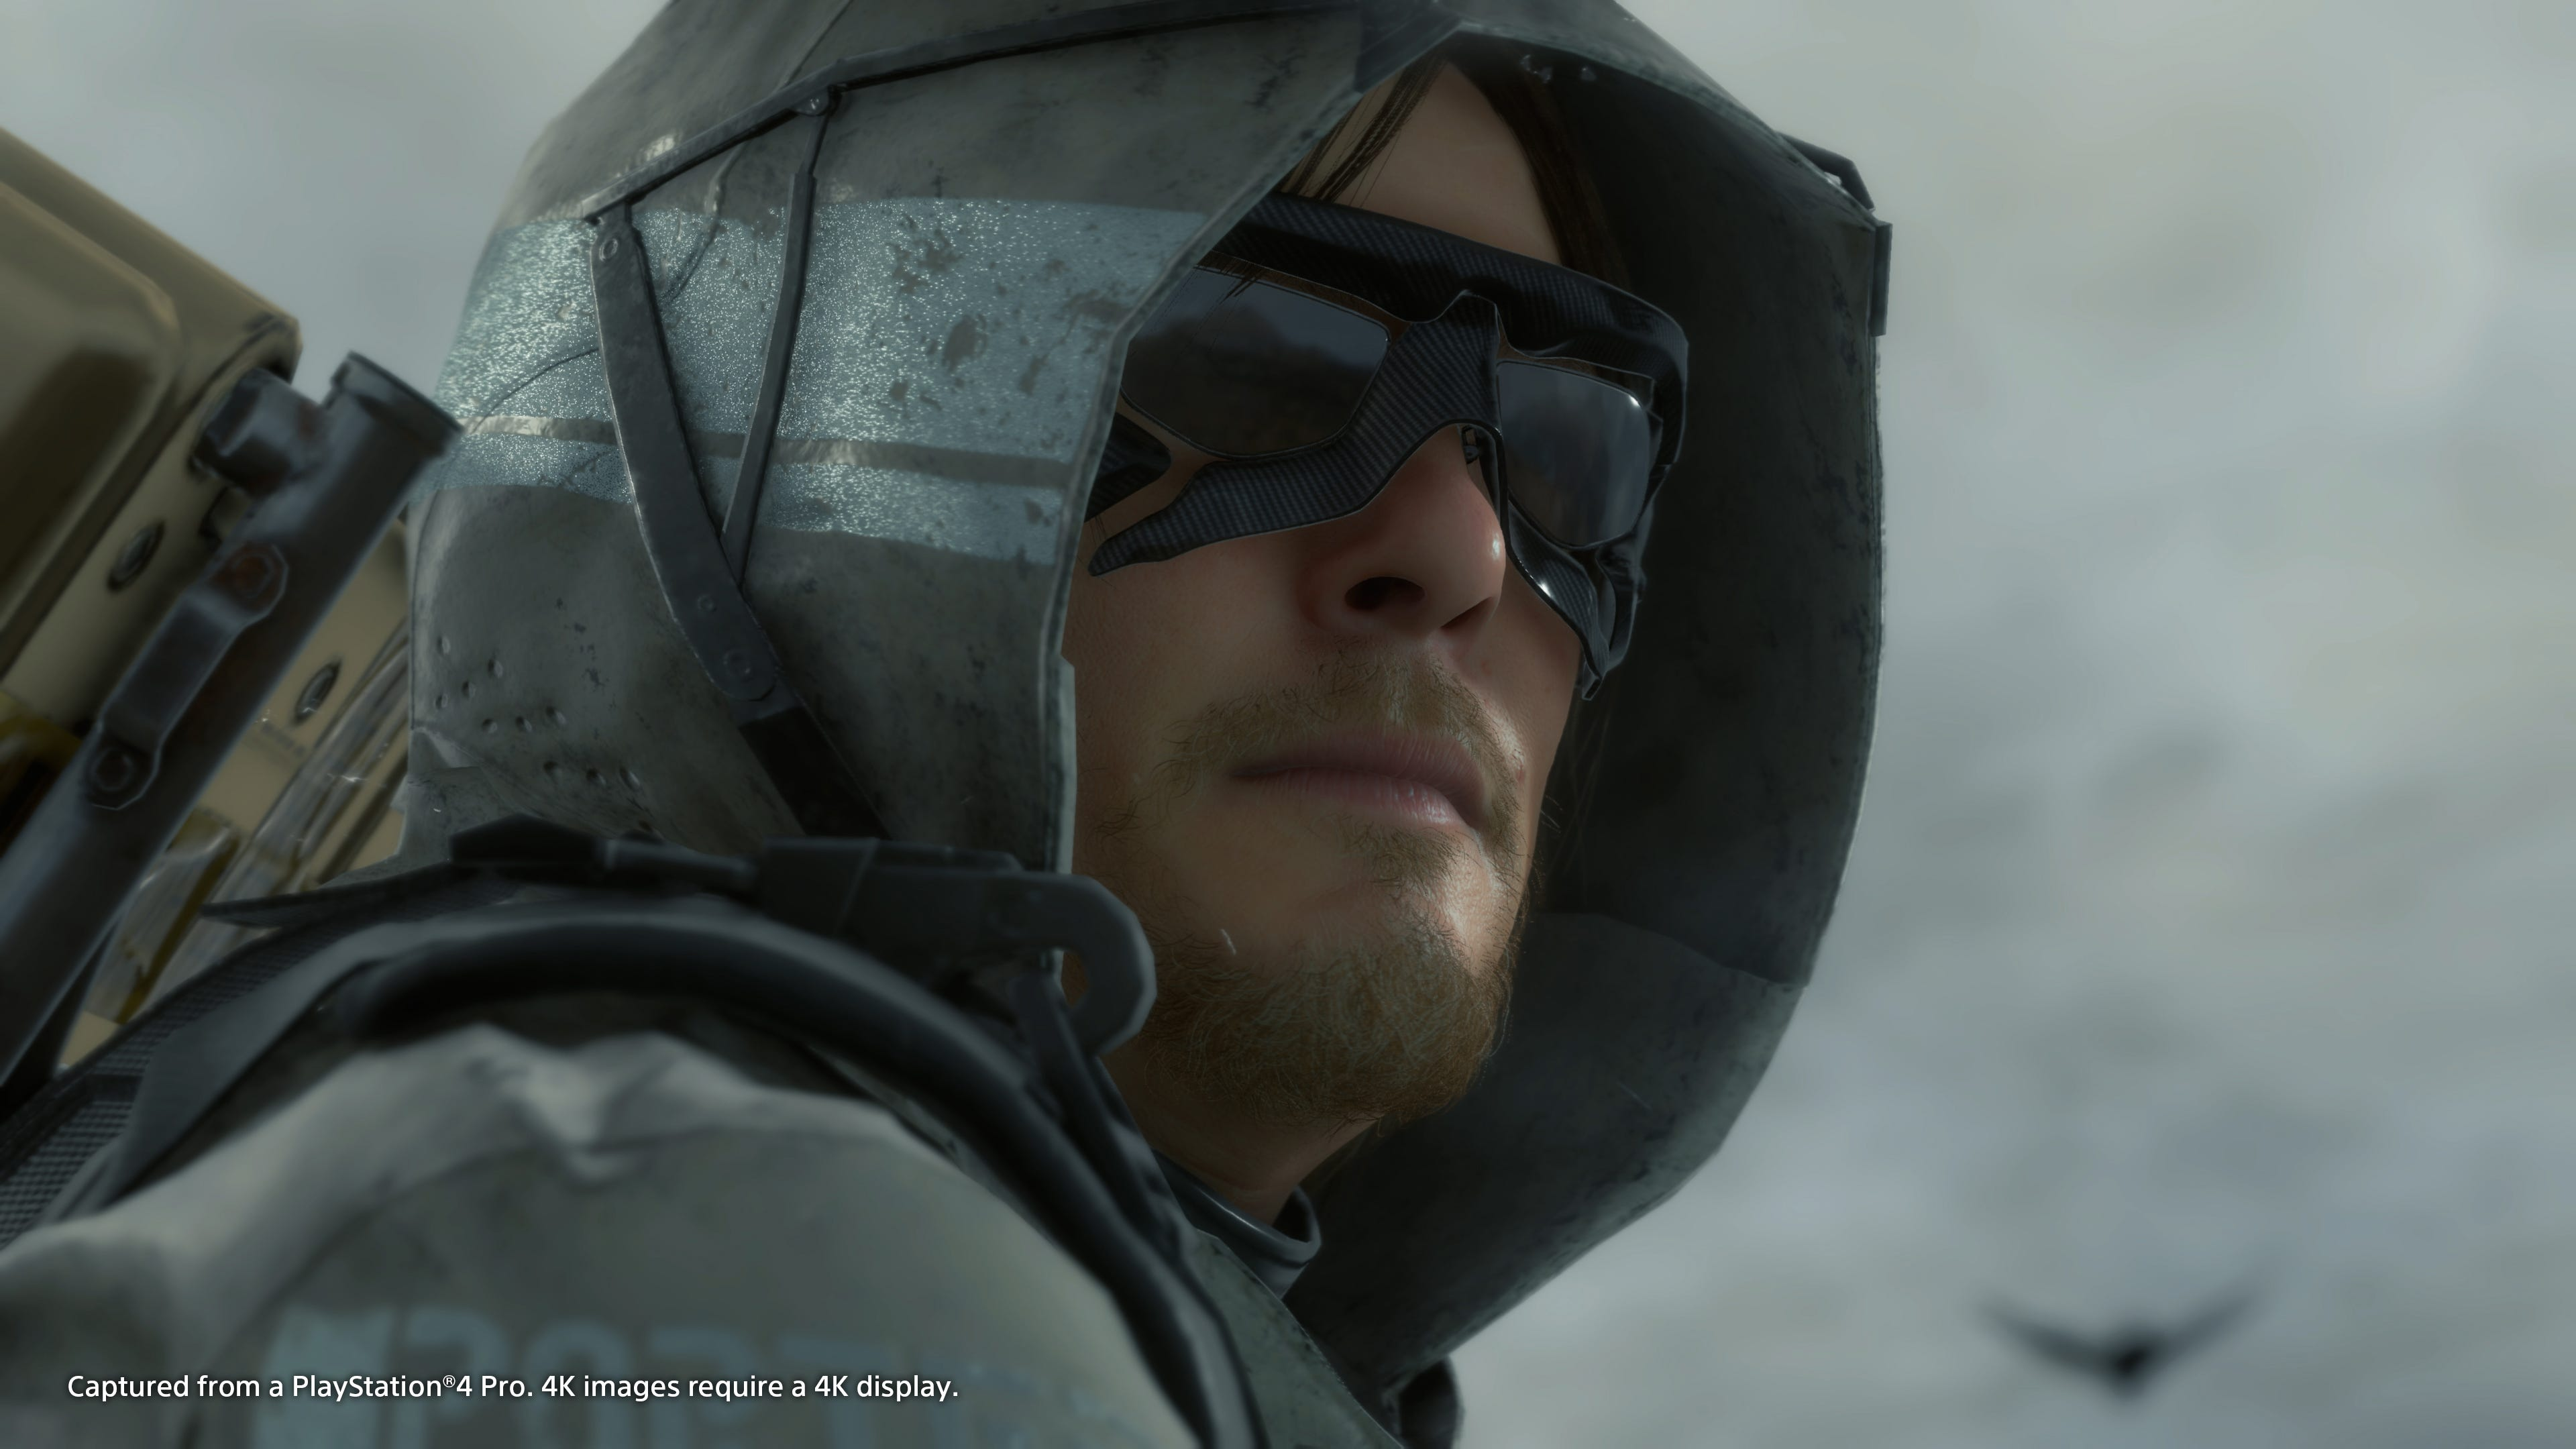 Death Stranding A Video Game Shrouded In Mystery Now Unveiled Скачивай и слушай intermix dead ladder на zvooq.online! death stranding a video game shrouded